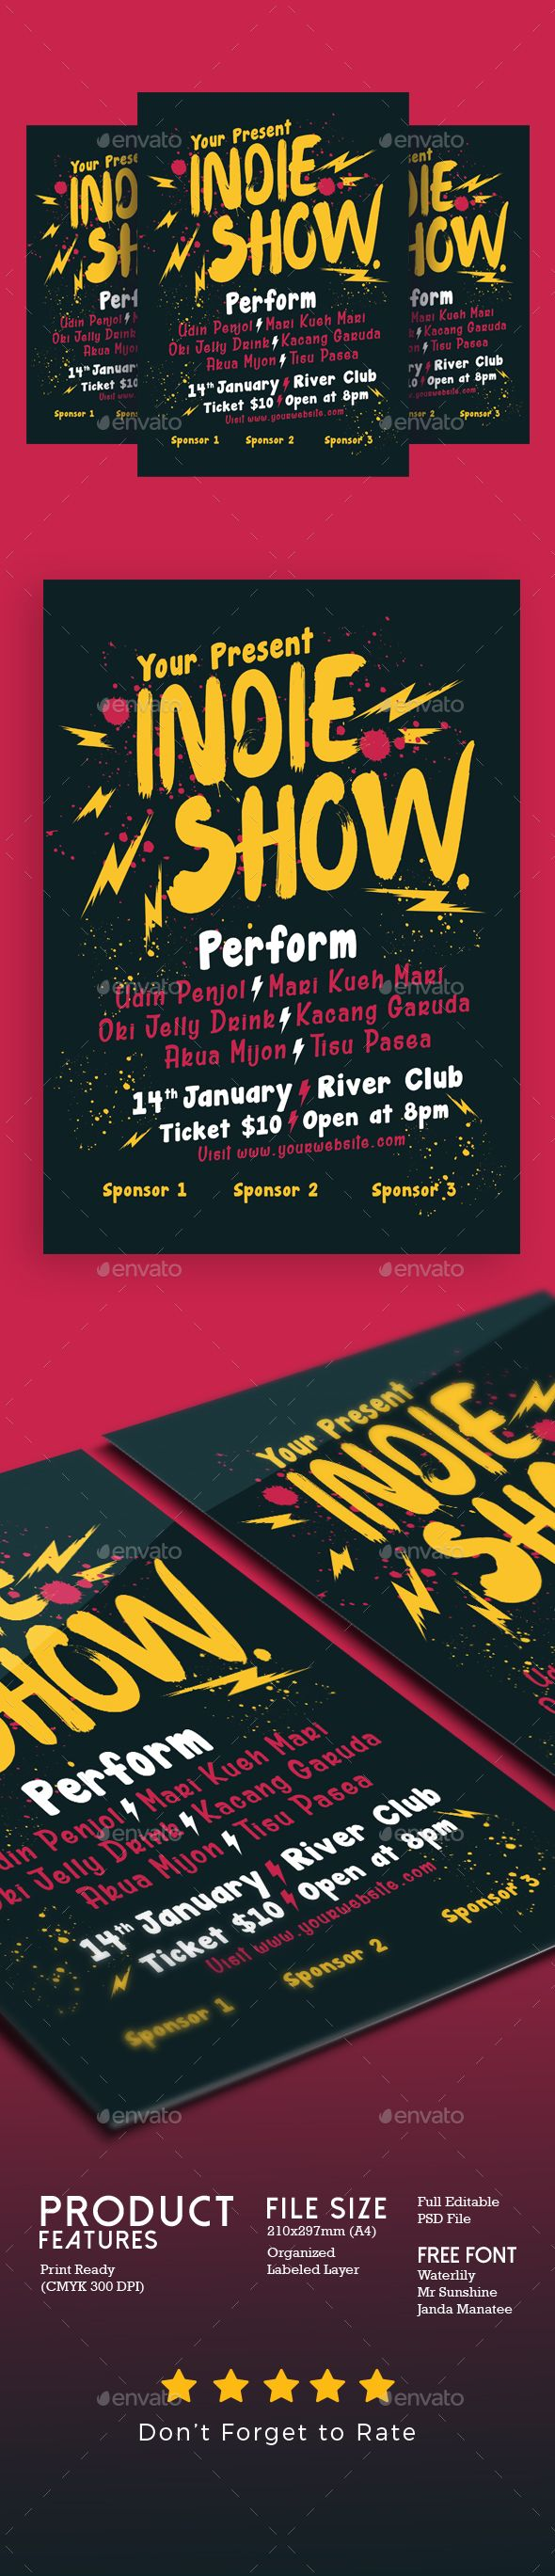 Indie Show Concert Flyer — Photoshop PSD #ads #indie concert • Available here → https://graphicriver.net/item/indie-show-concert-flyer/19203772?ref=pxcr